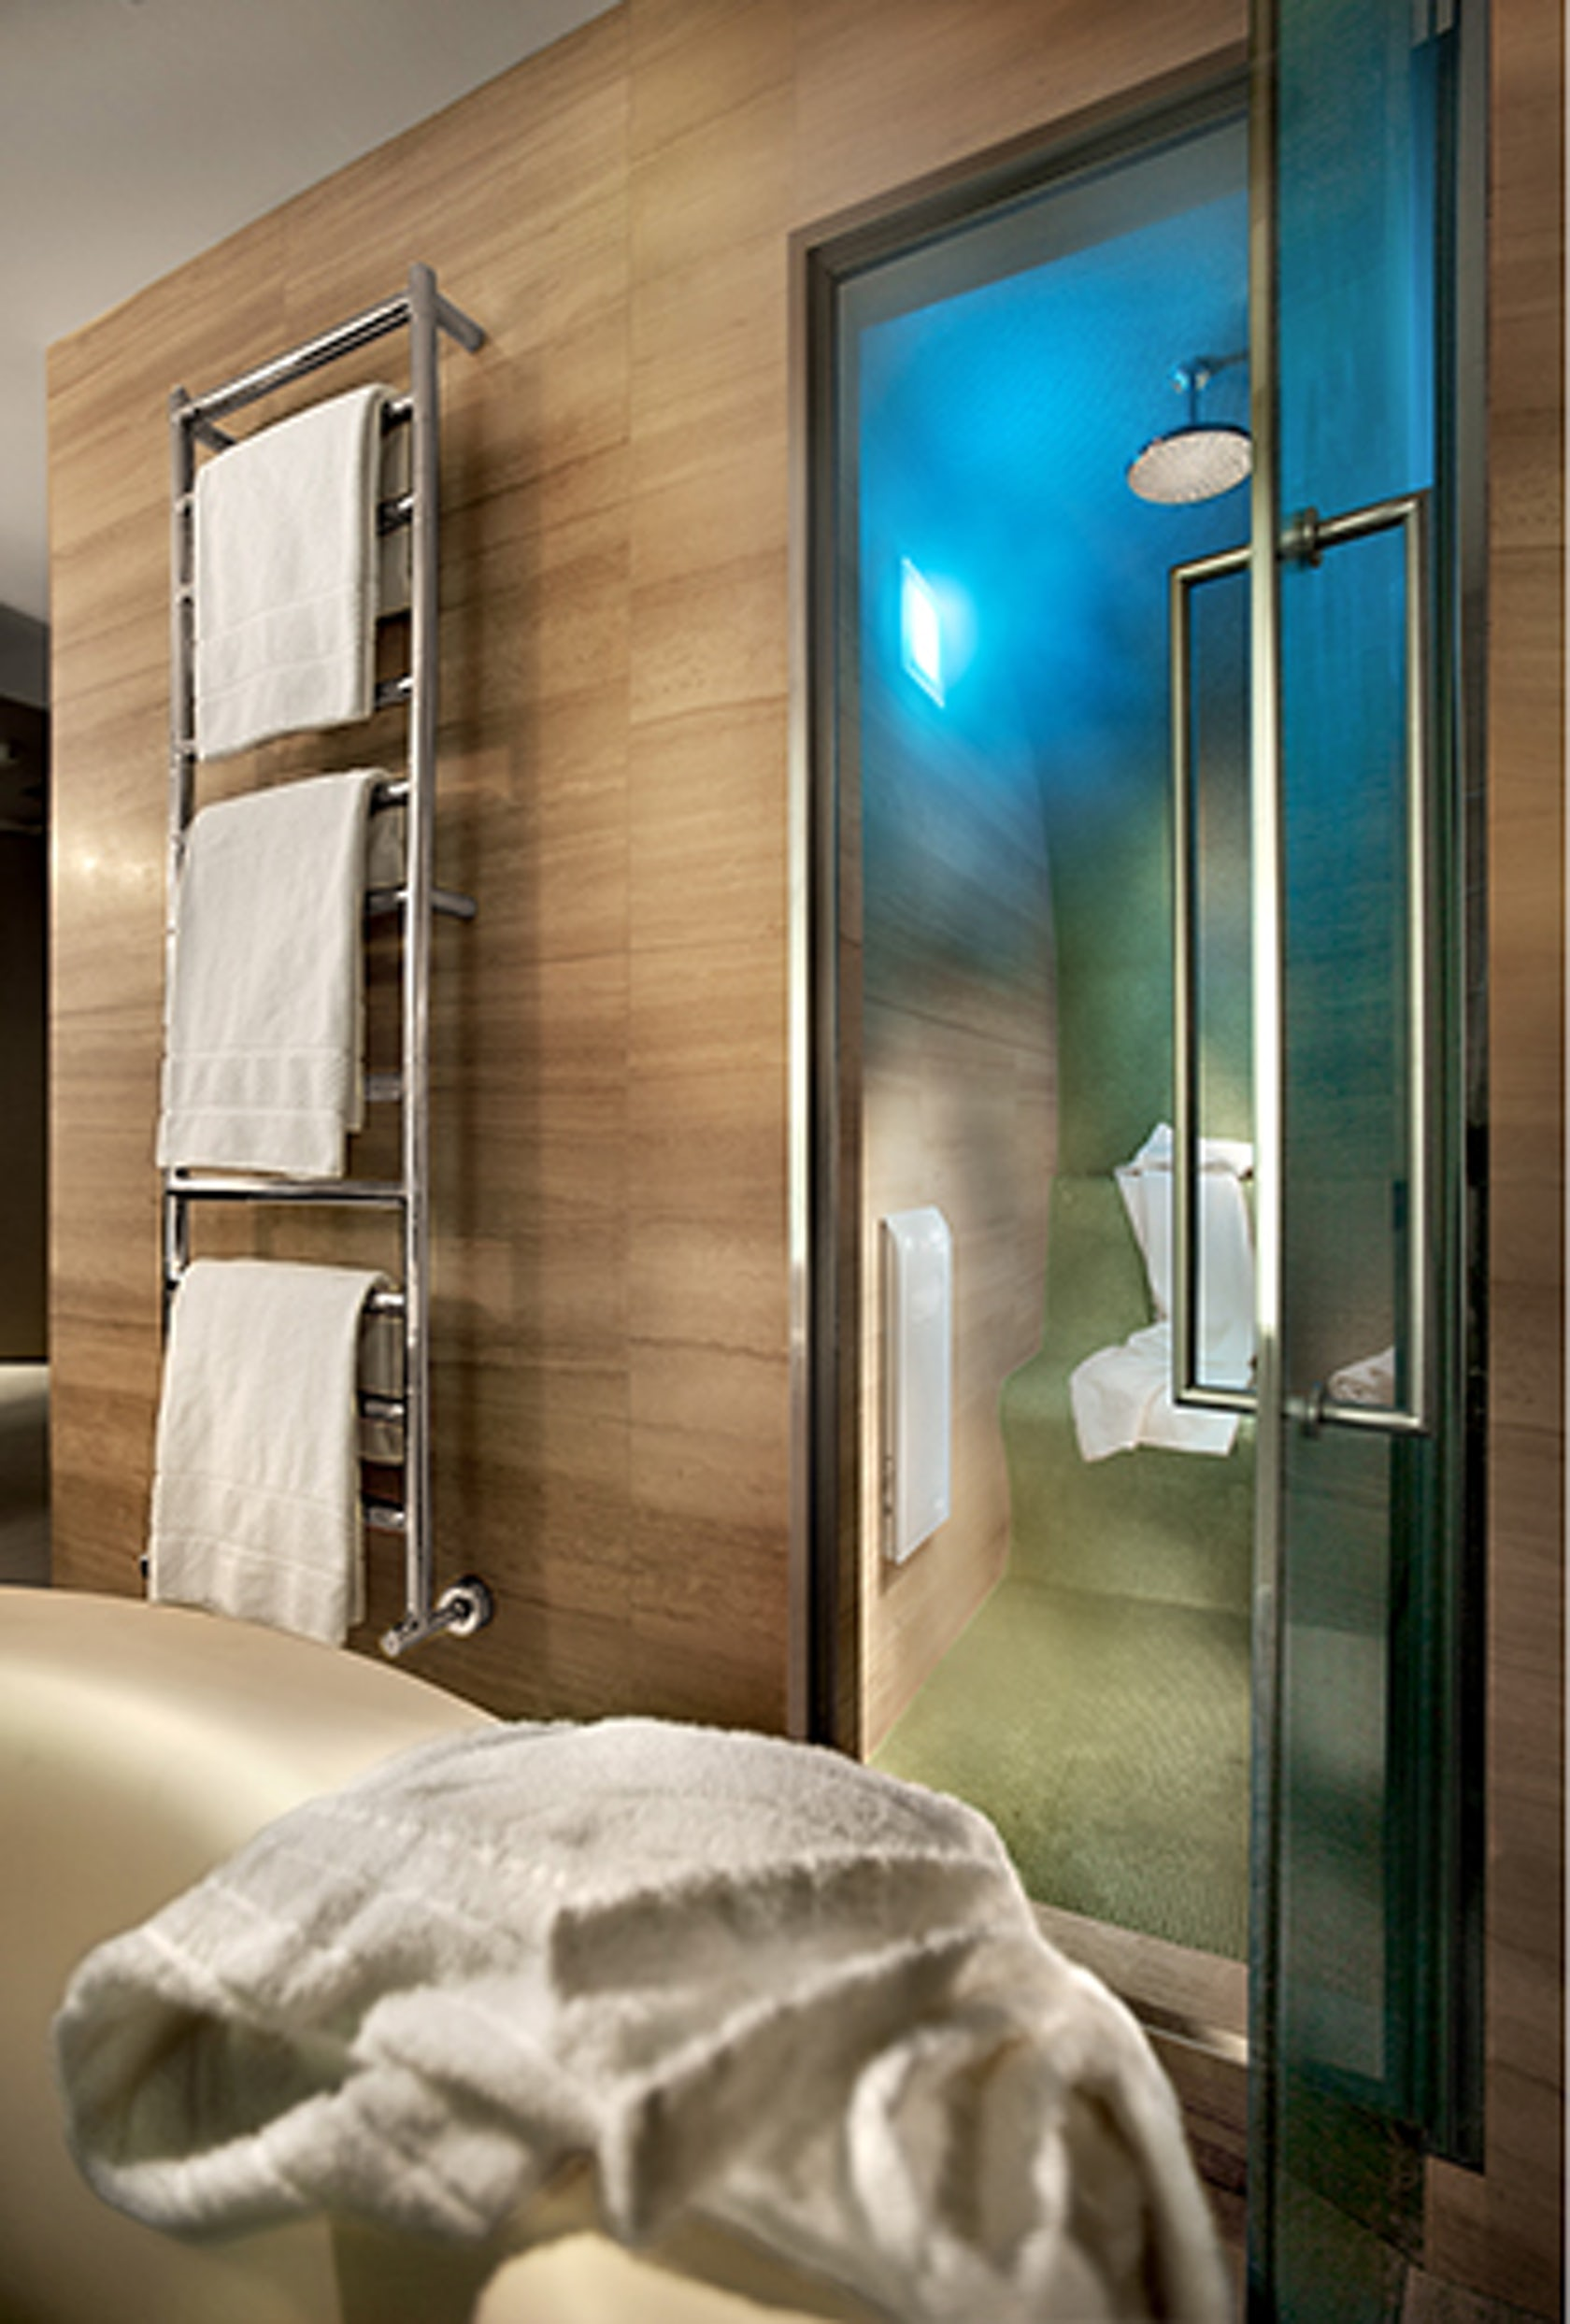 Hotel cavour milan executive room architizer for Hotel cavour milano